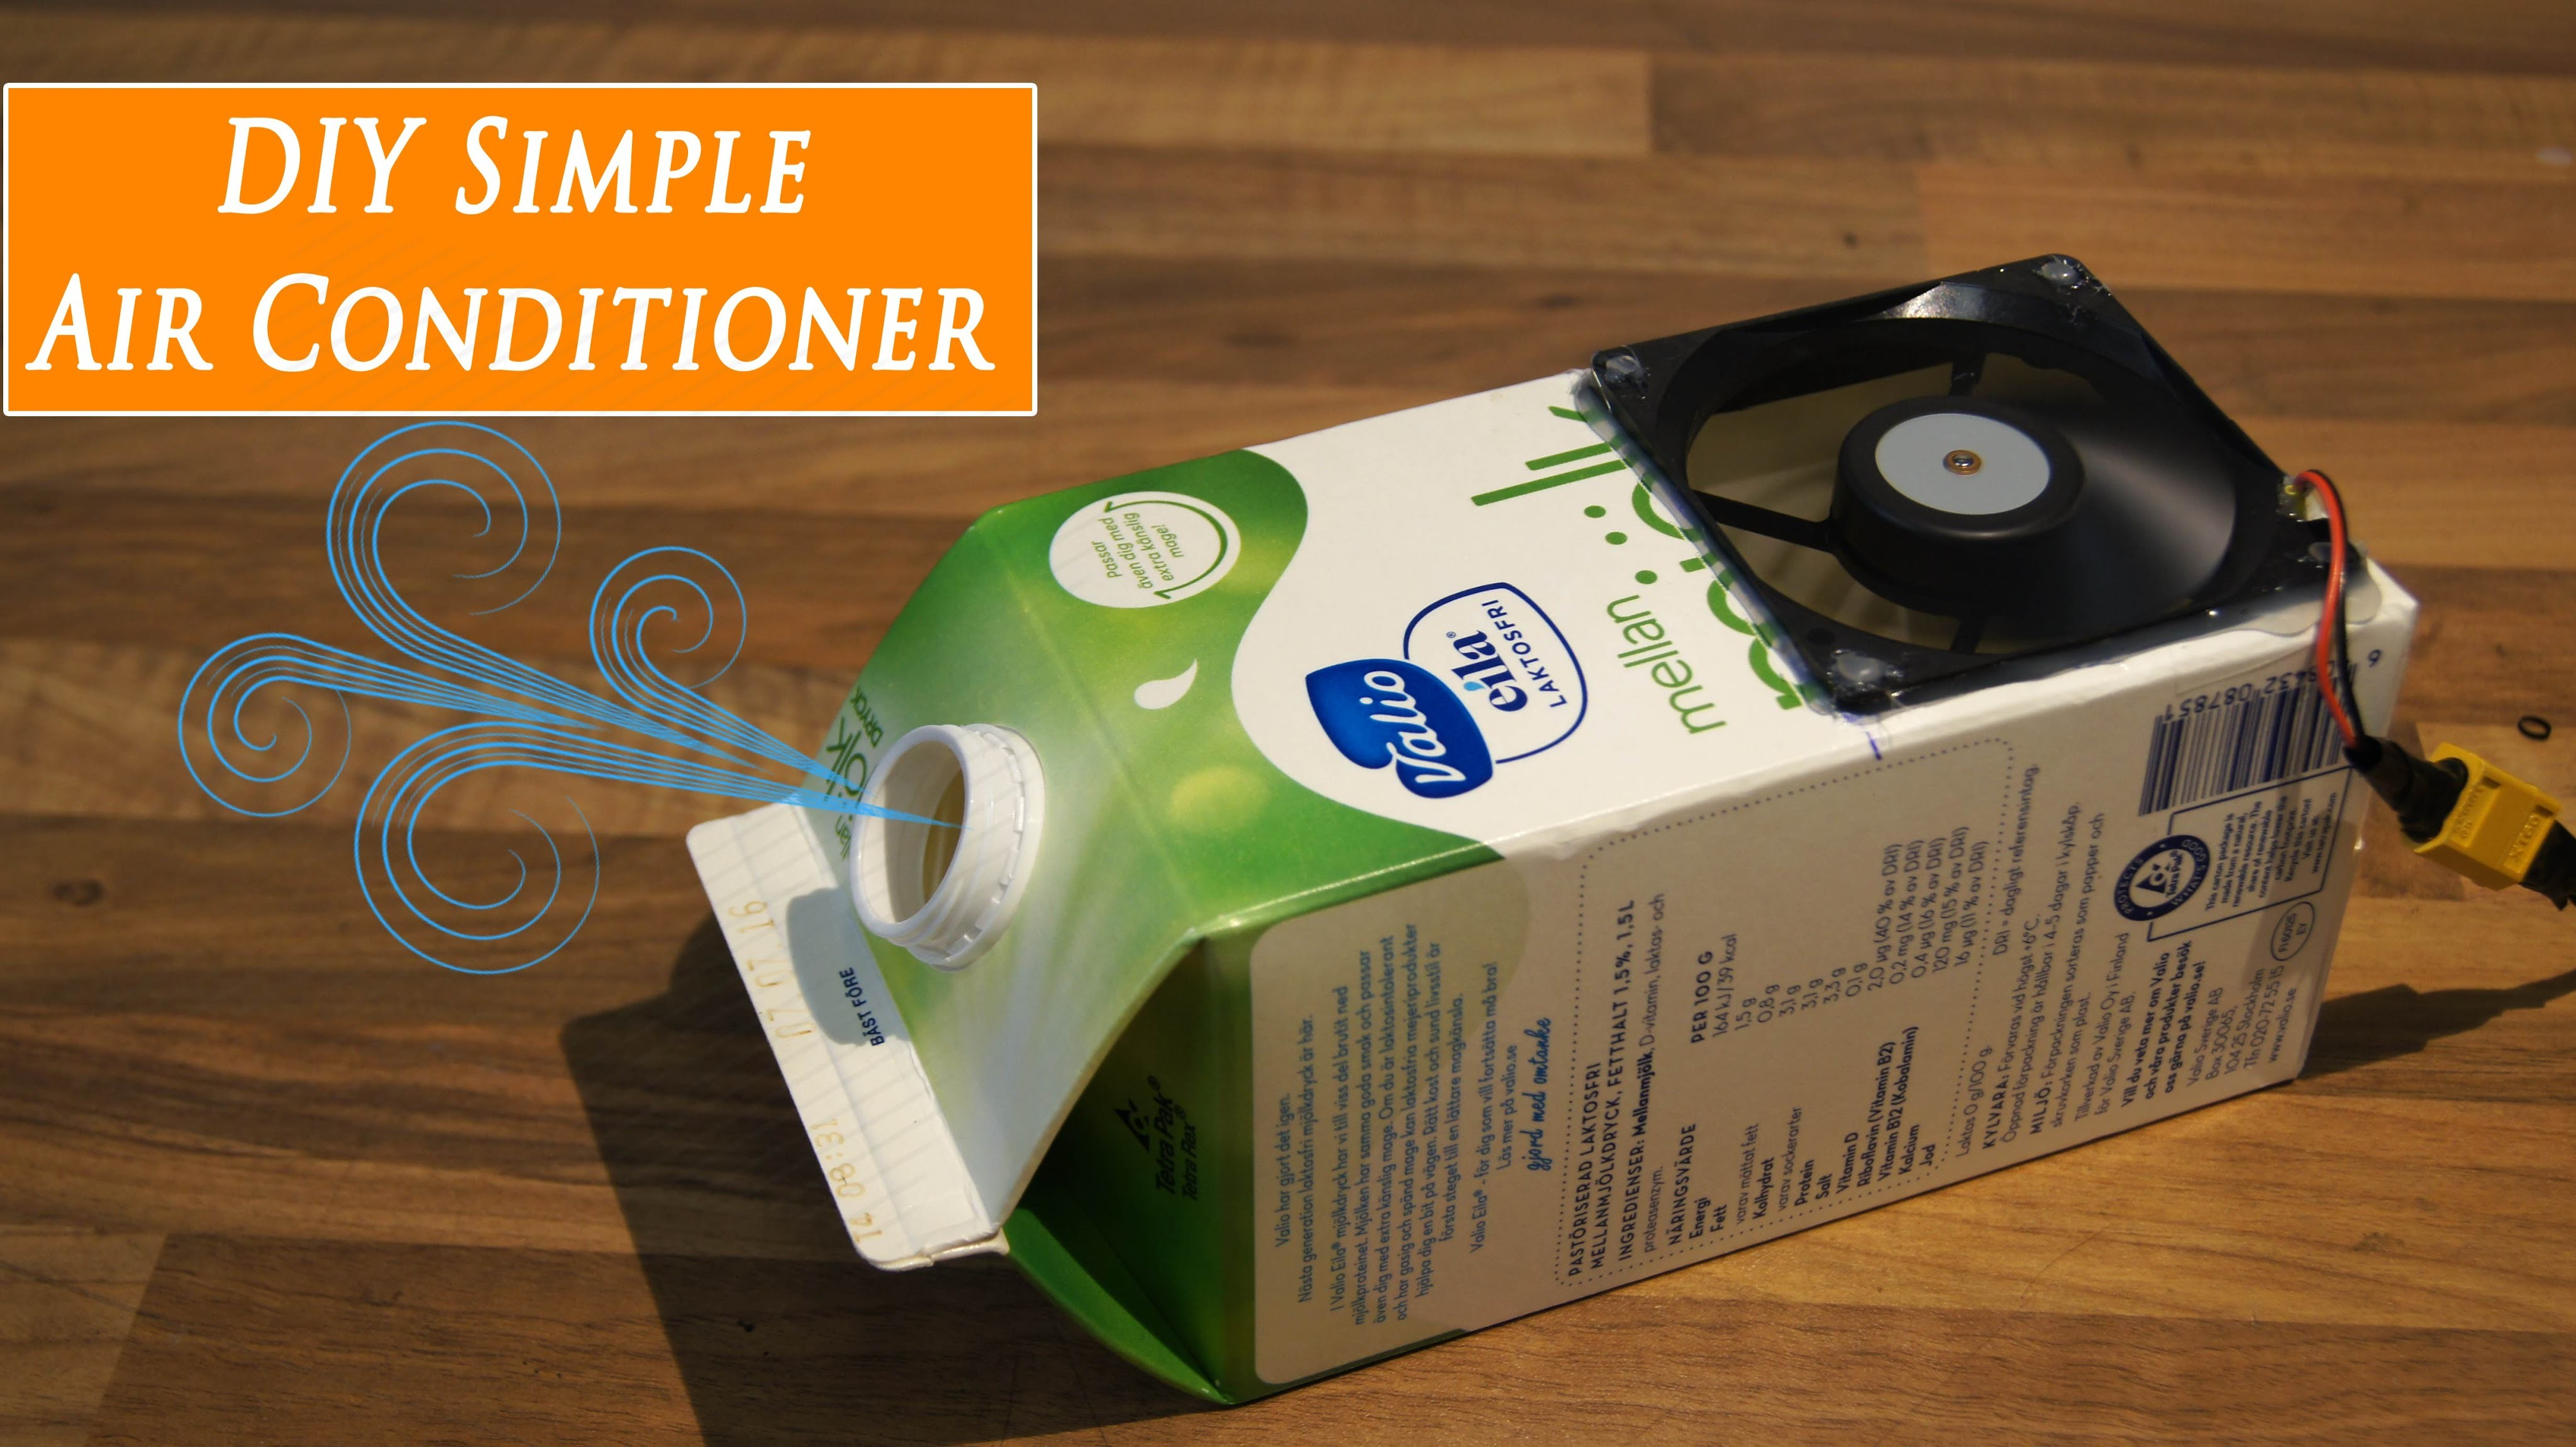 DIY Cheap Homemade Air Conditioner Quick Build - RCLifeOn